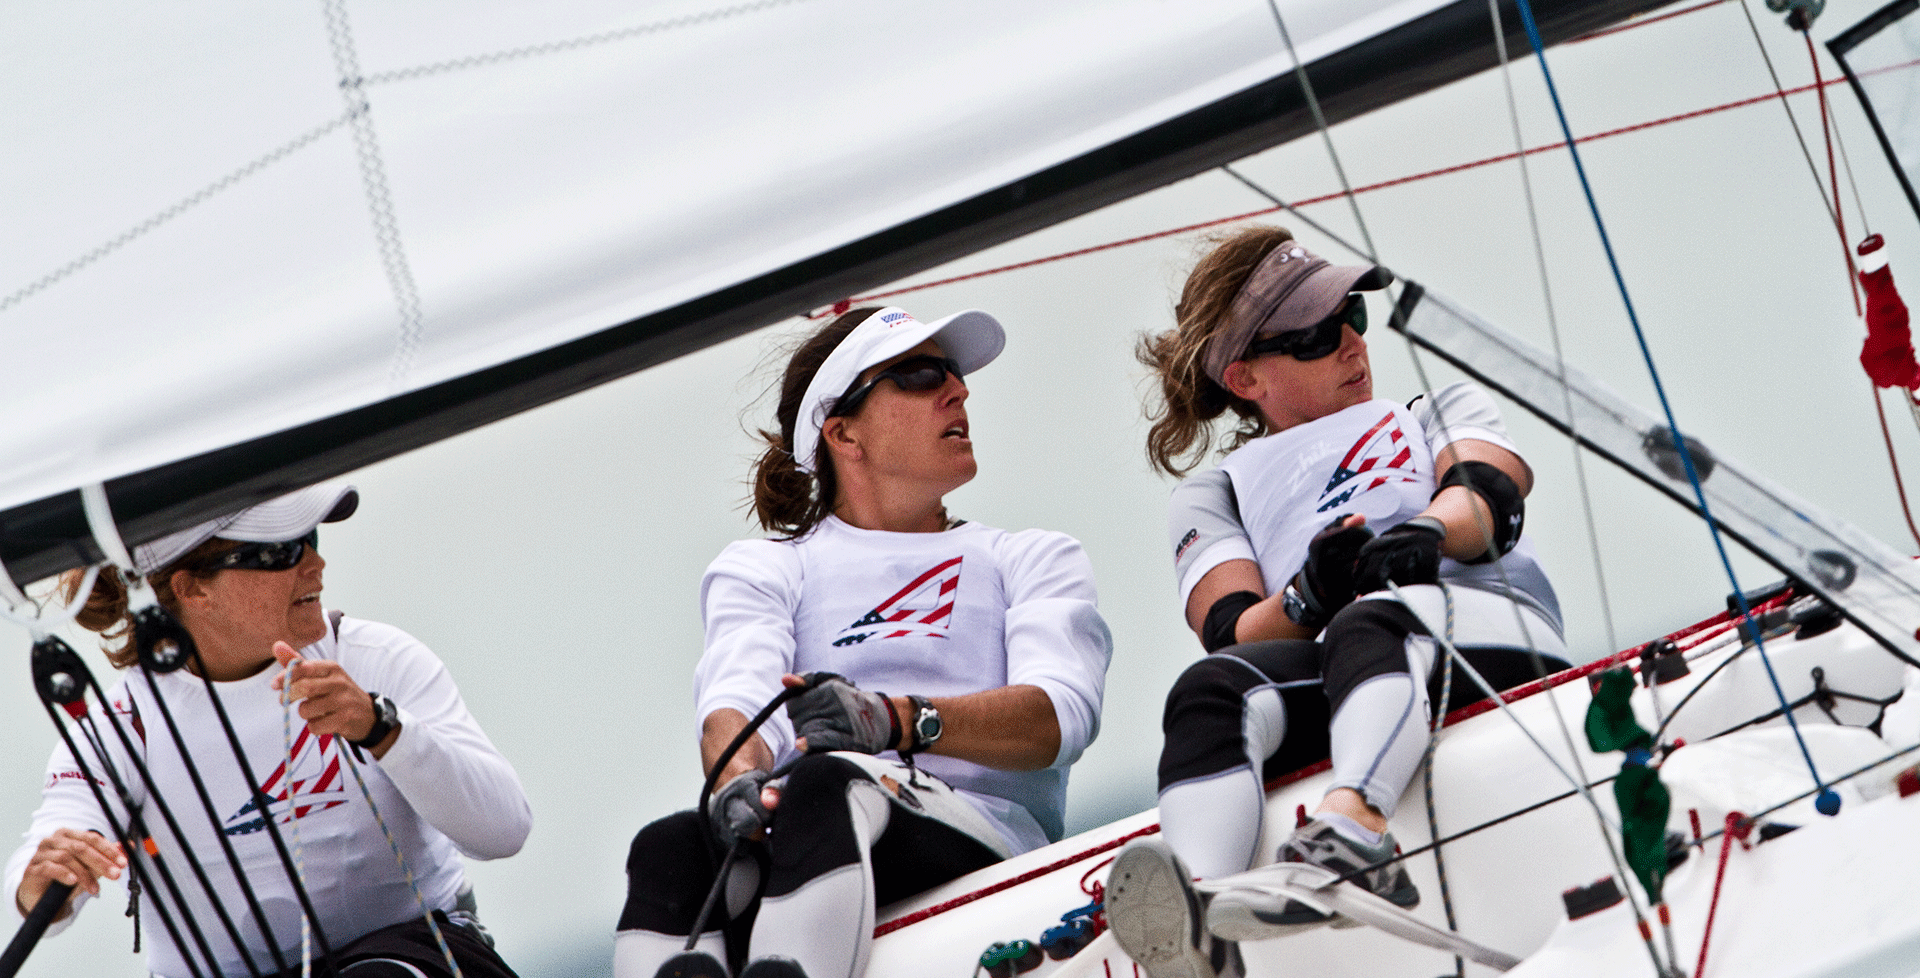 Ambassador Elizabeth Kratzig, sailing aboard an Elliot 6M while campaigning for the 2008 Olympics. Credit: Amory Ross